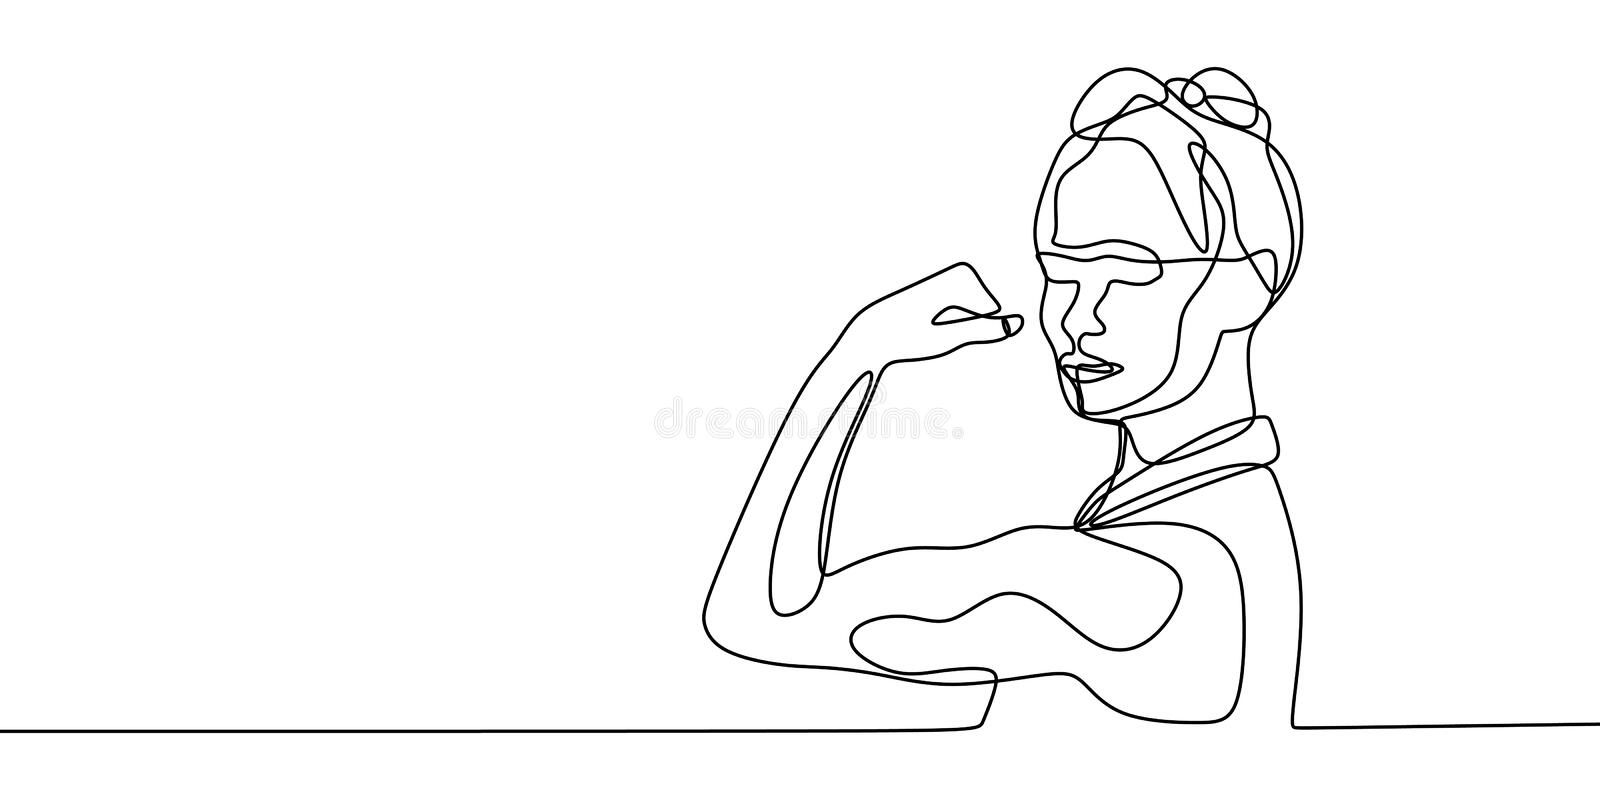 Strong women continuous one line drawing vector illustration. Concept of girl power minimalism design. Female fist art strength arm graphic hand icon sketch vector illustration